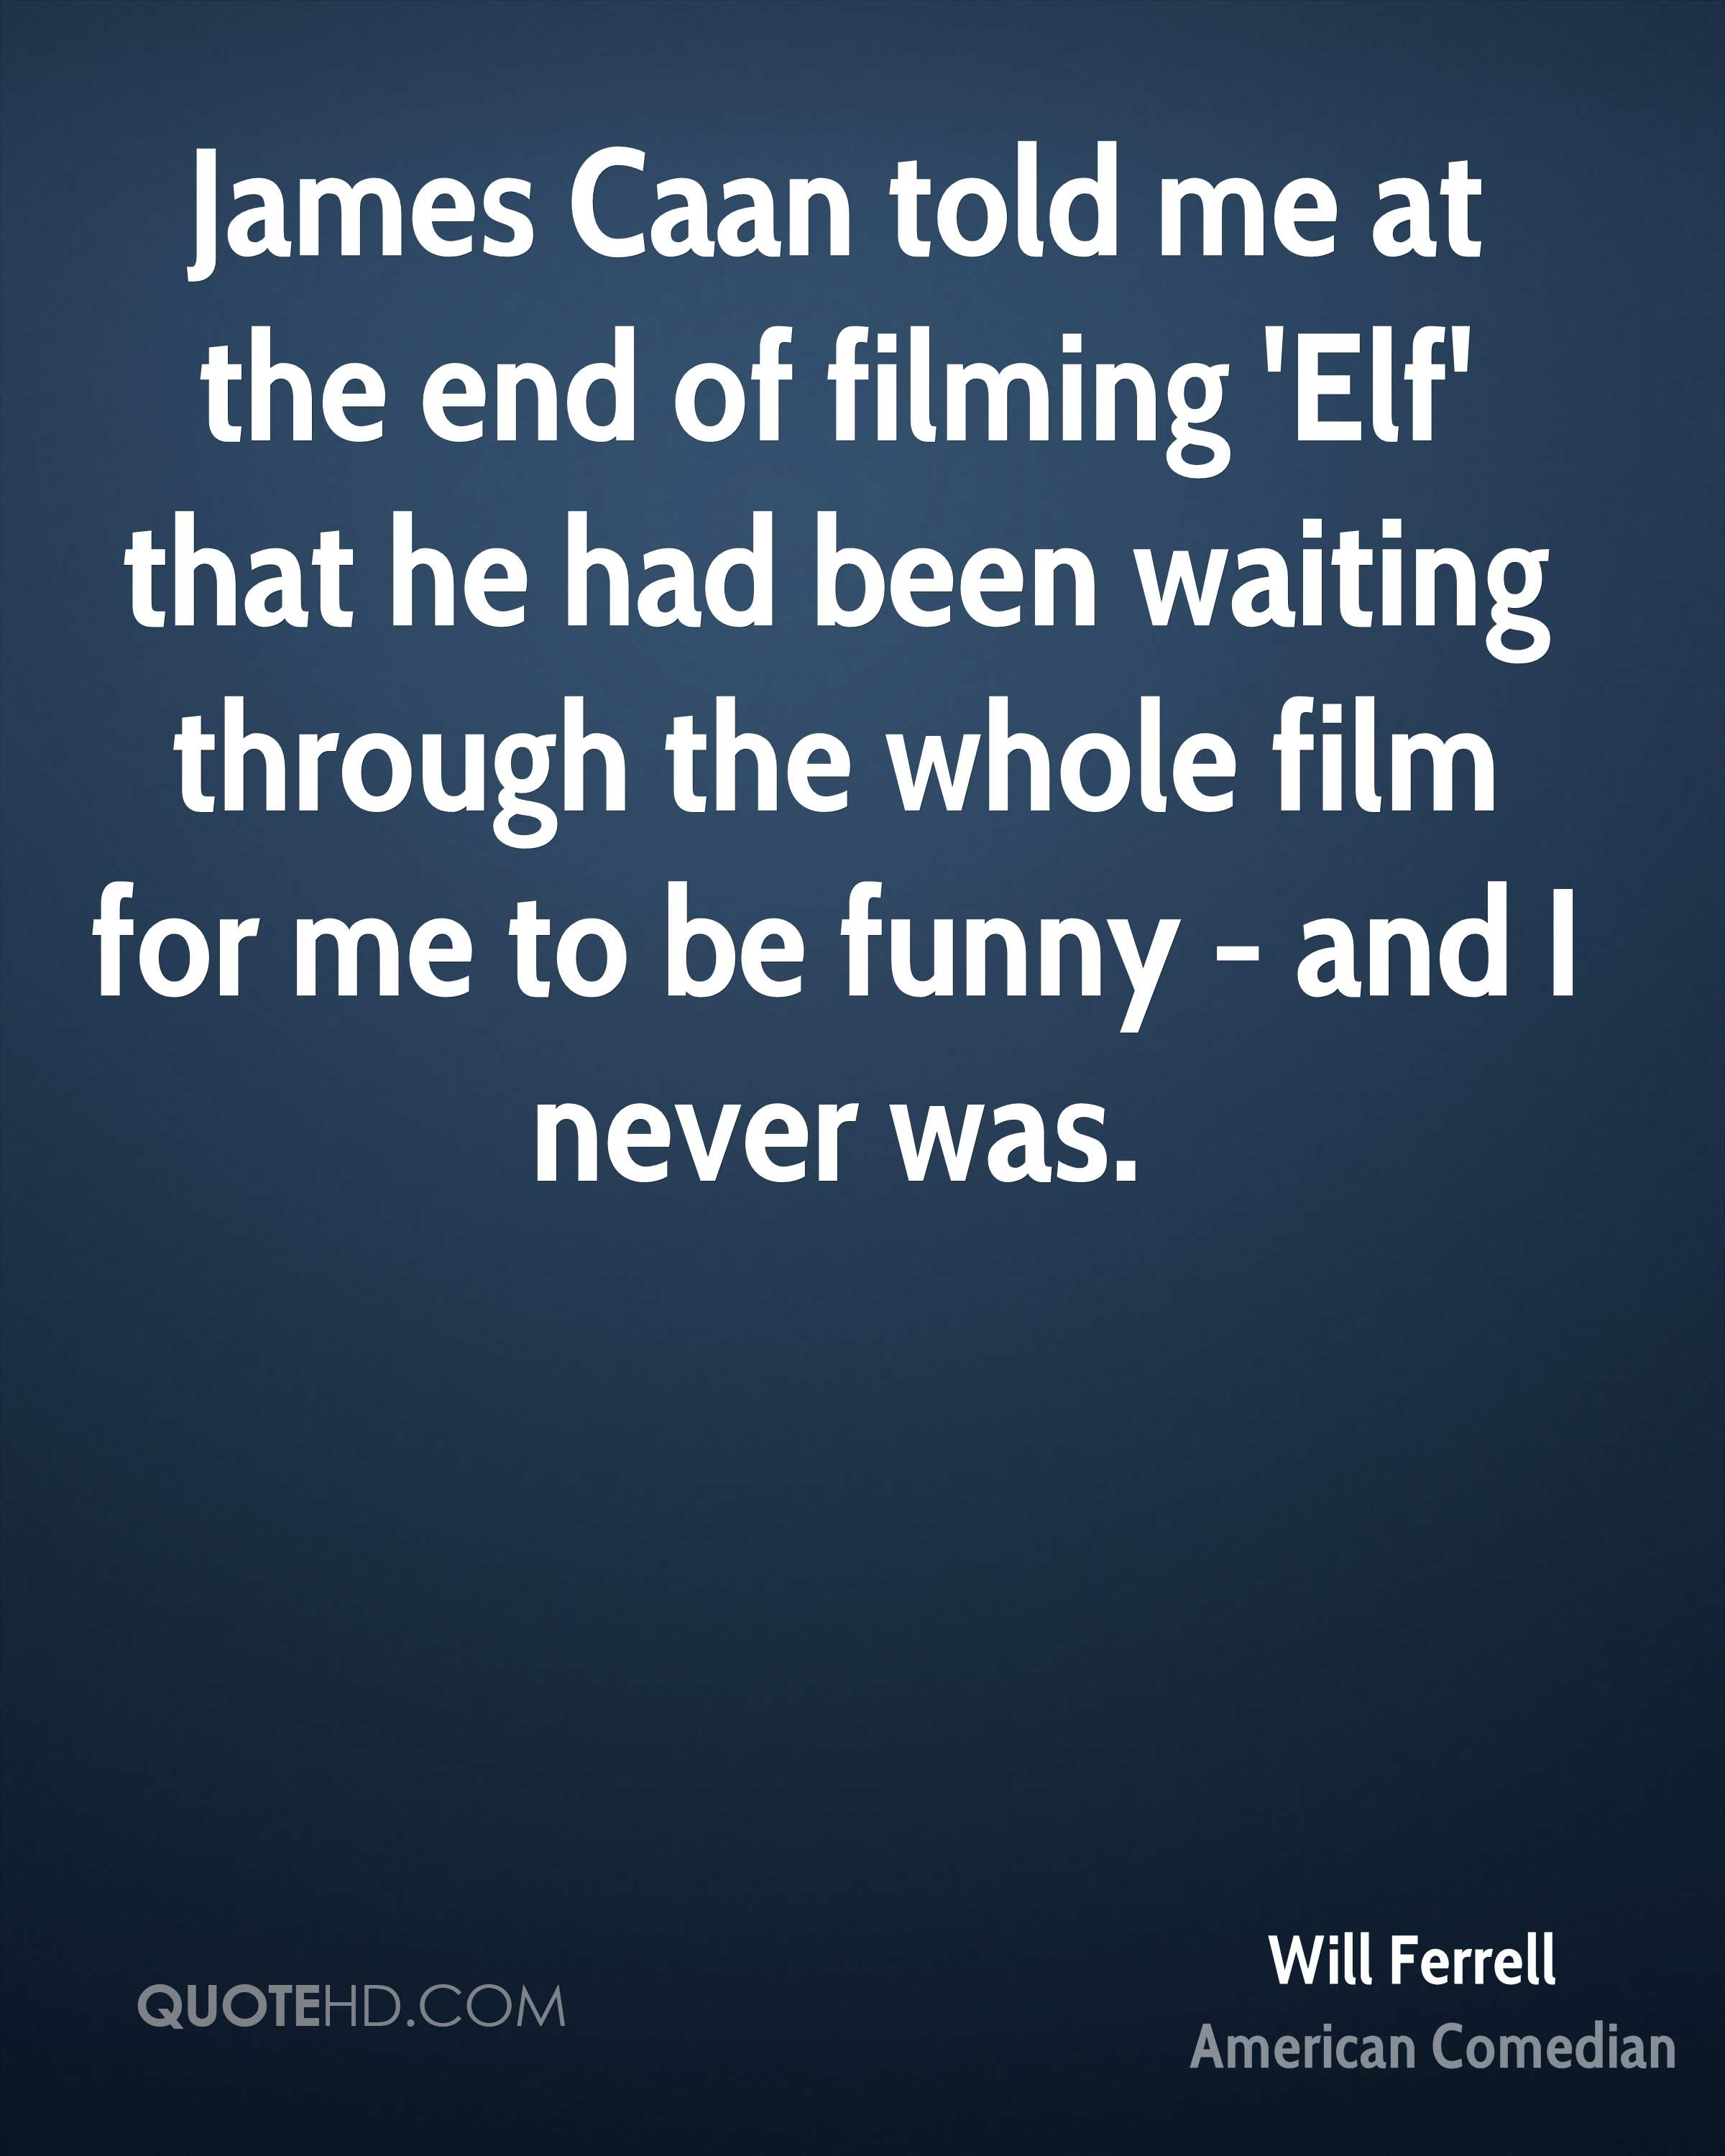 James Caan told me at the end of filming 'Elf' that he had been waiting through the whole film for me to be funny - and I never was.